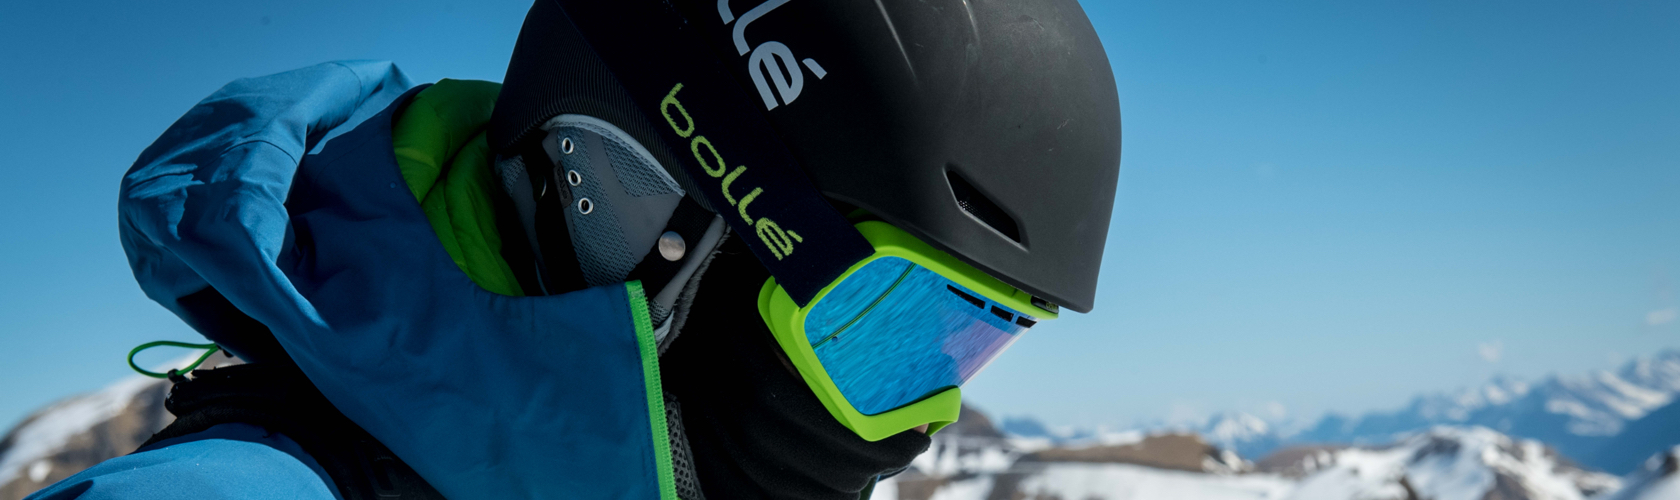 Bolle Goggles + Snowboard Jacket